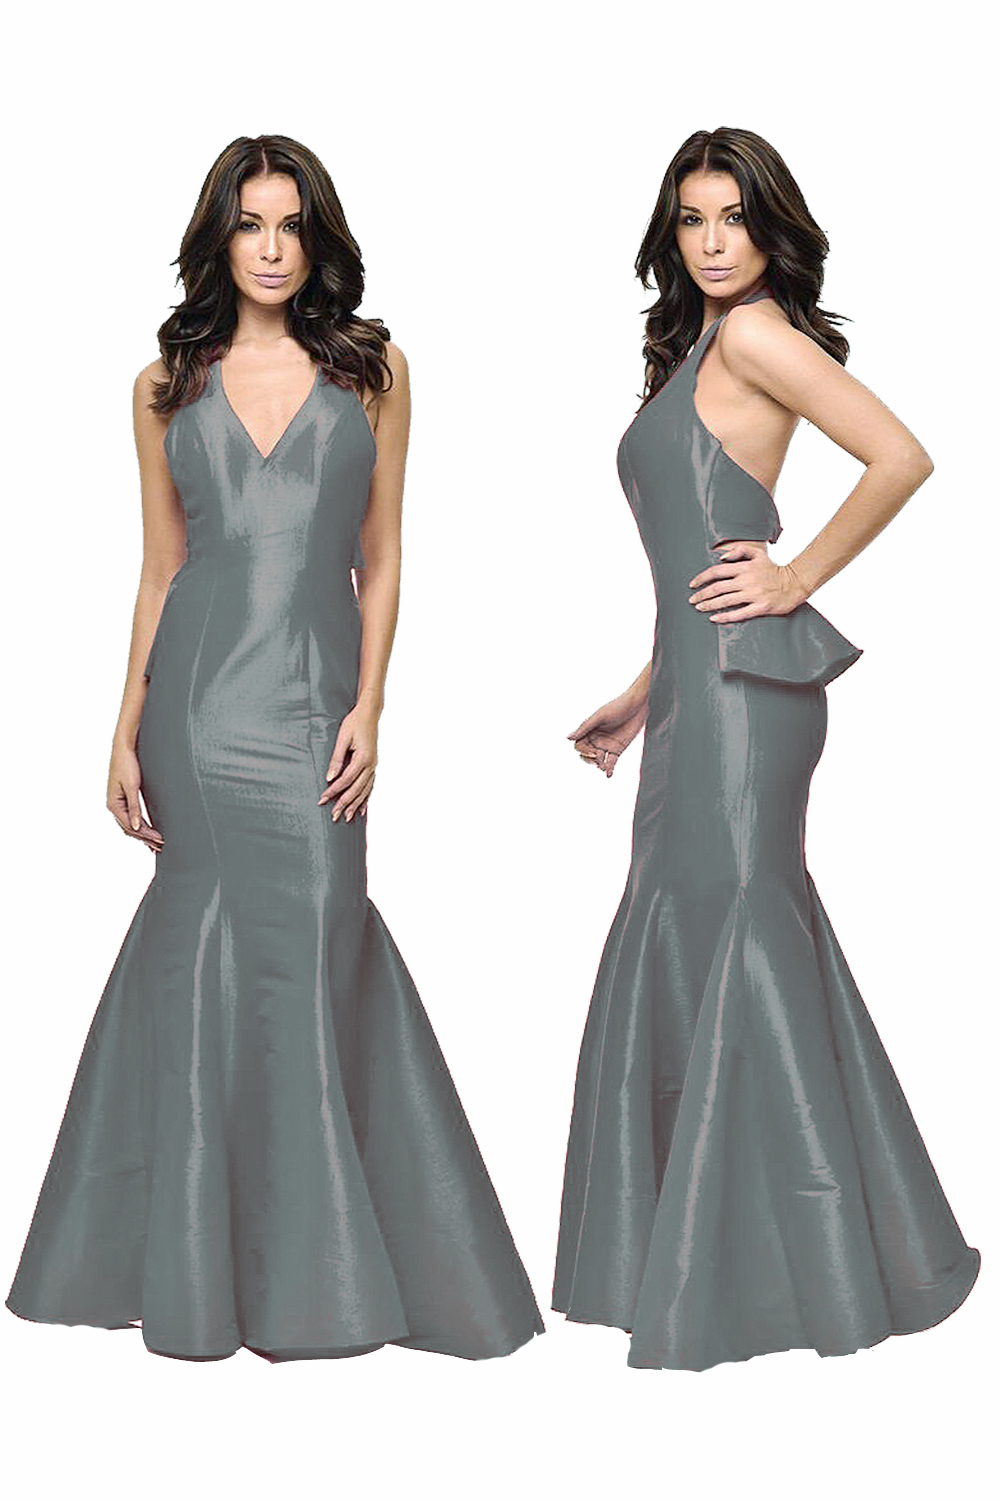 Slver Backless Trumpet Maxi Prom Dress 2016